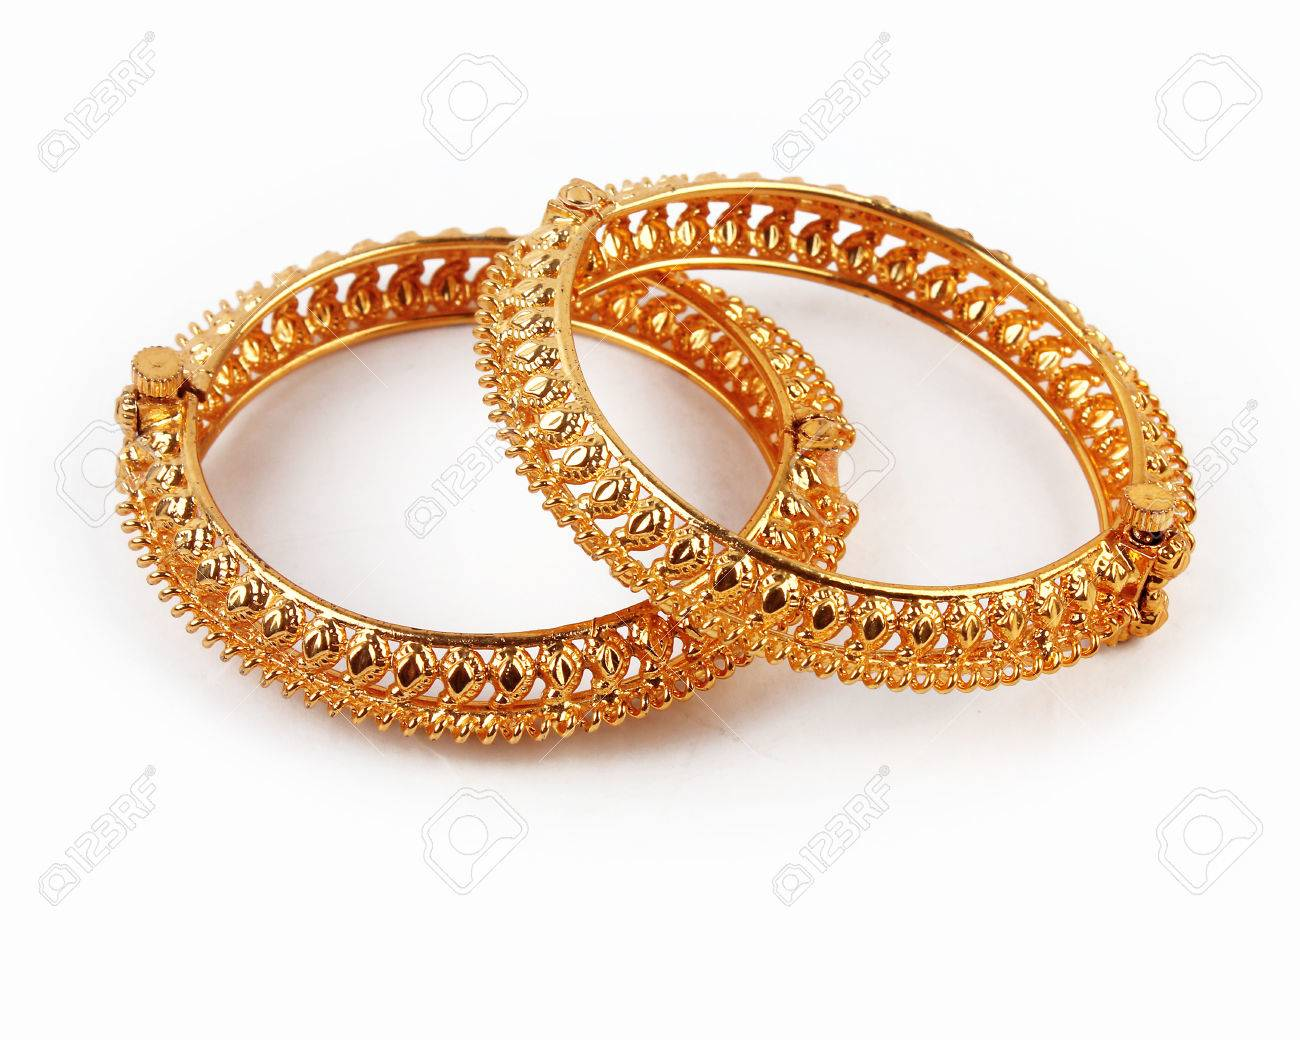 Traditional Indian Gold Bangles Stock Photo, Picture And Royalty ...